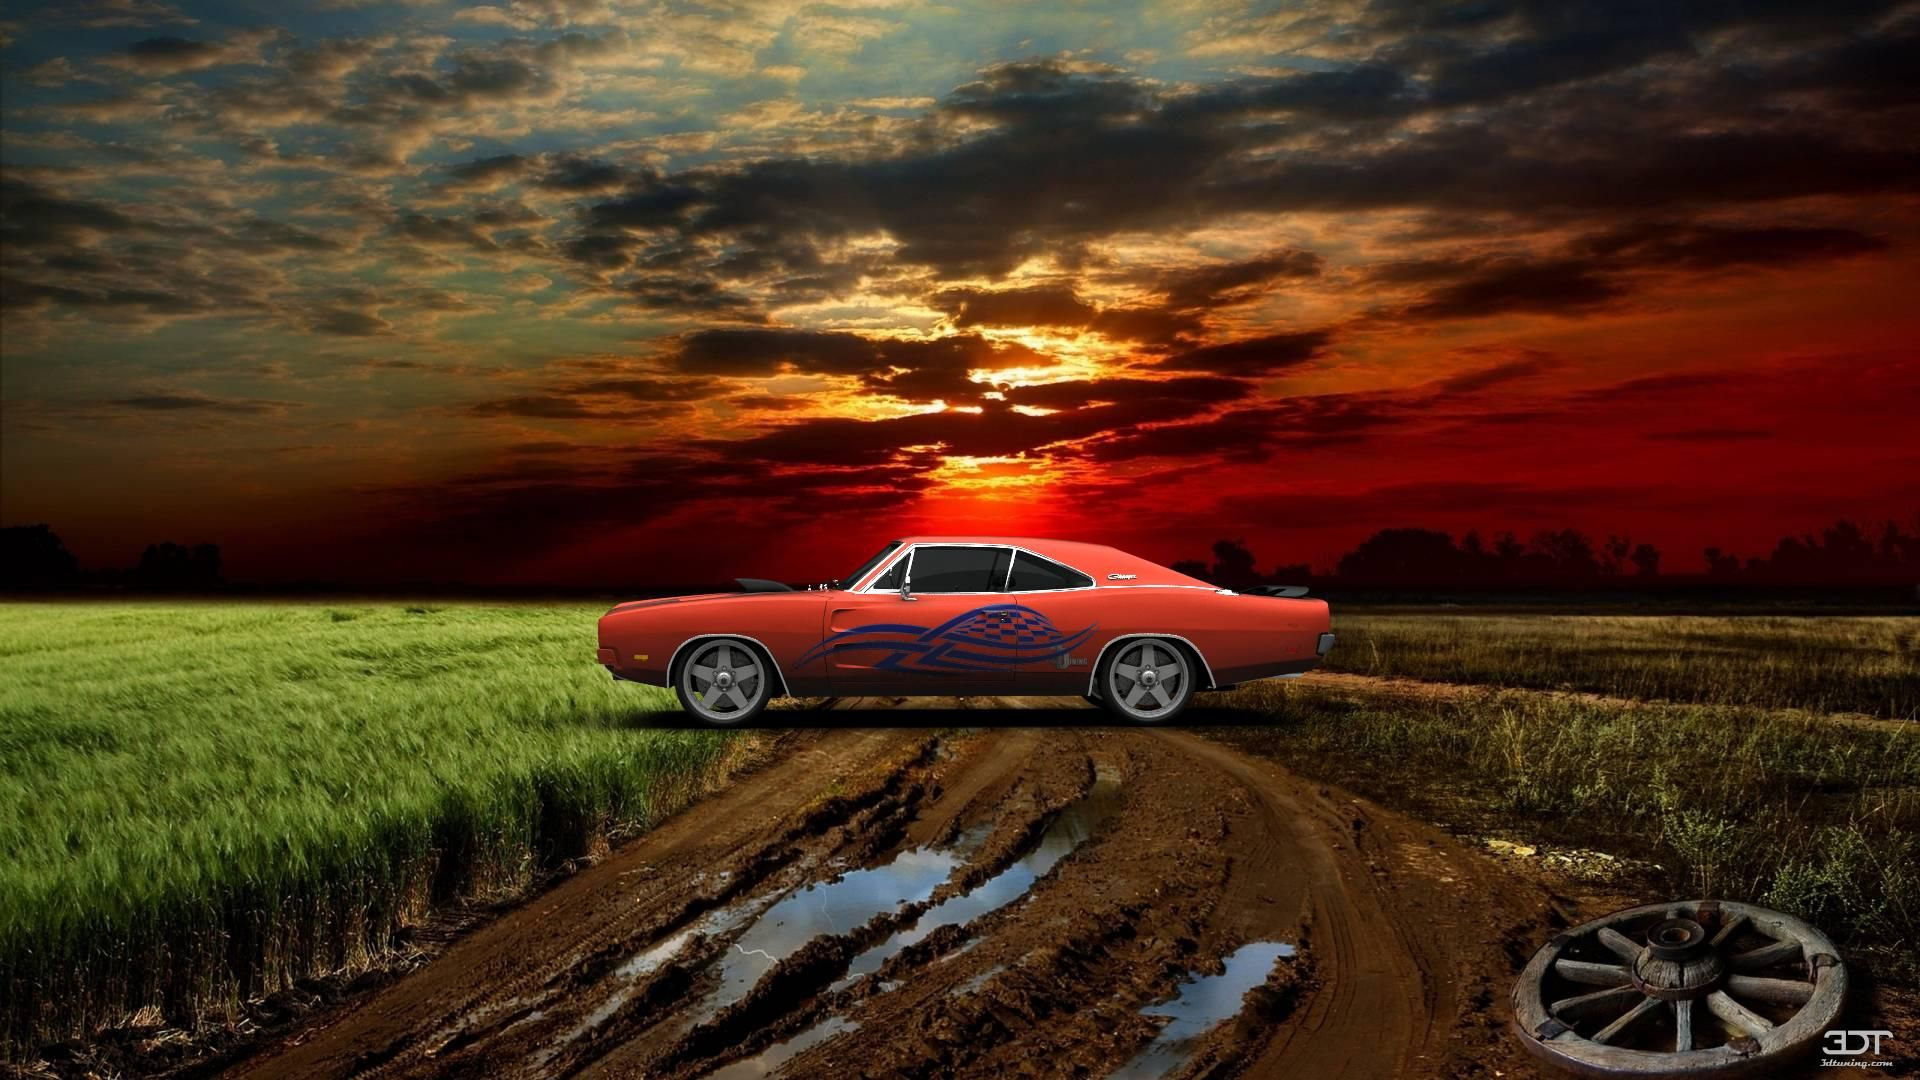 Checkout my tuning Dodge Charger 1969 at 3DTuning 3dtuning